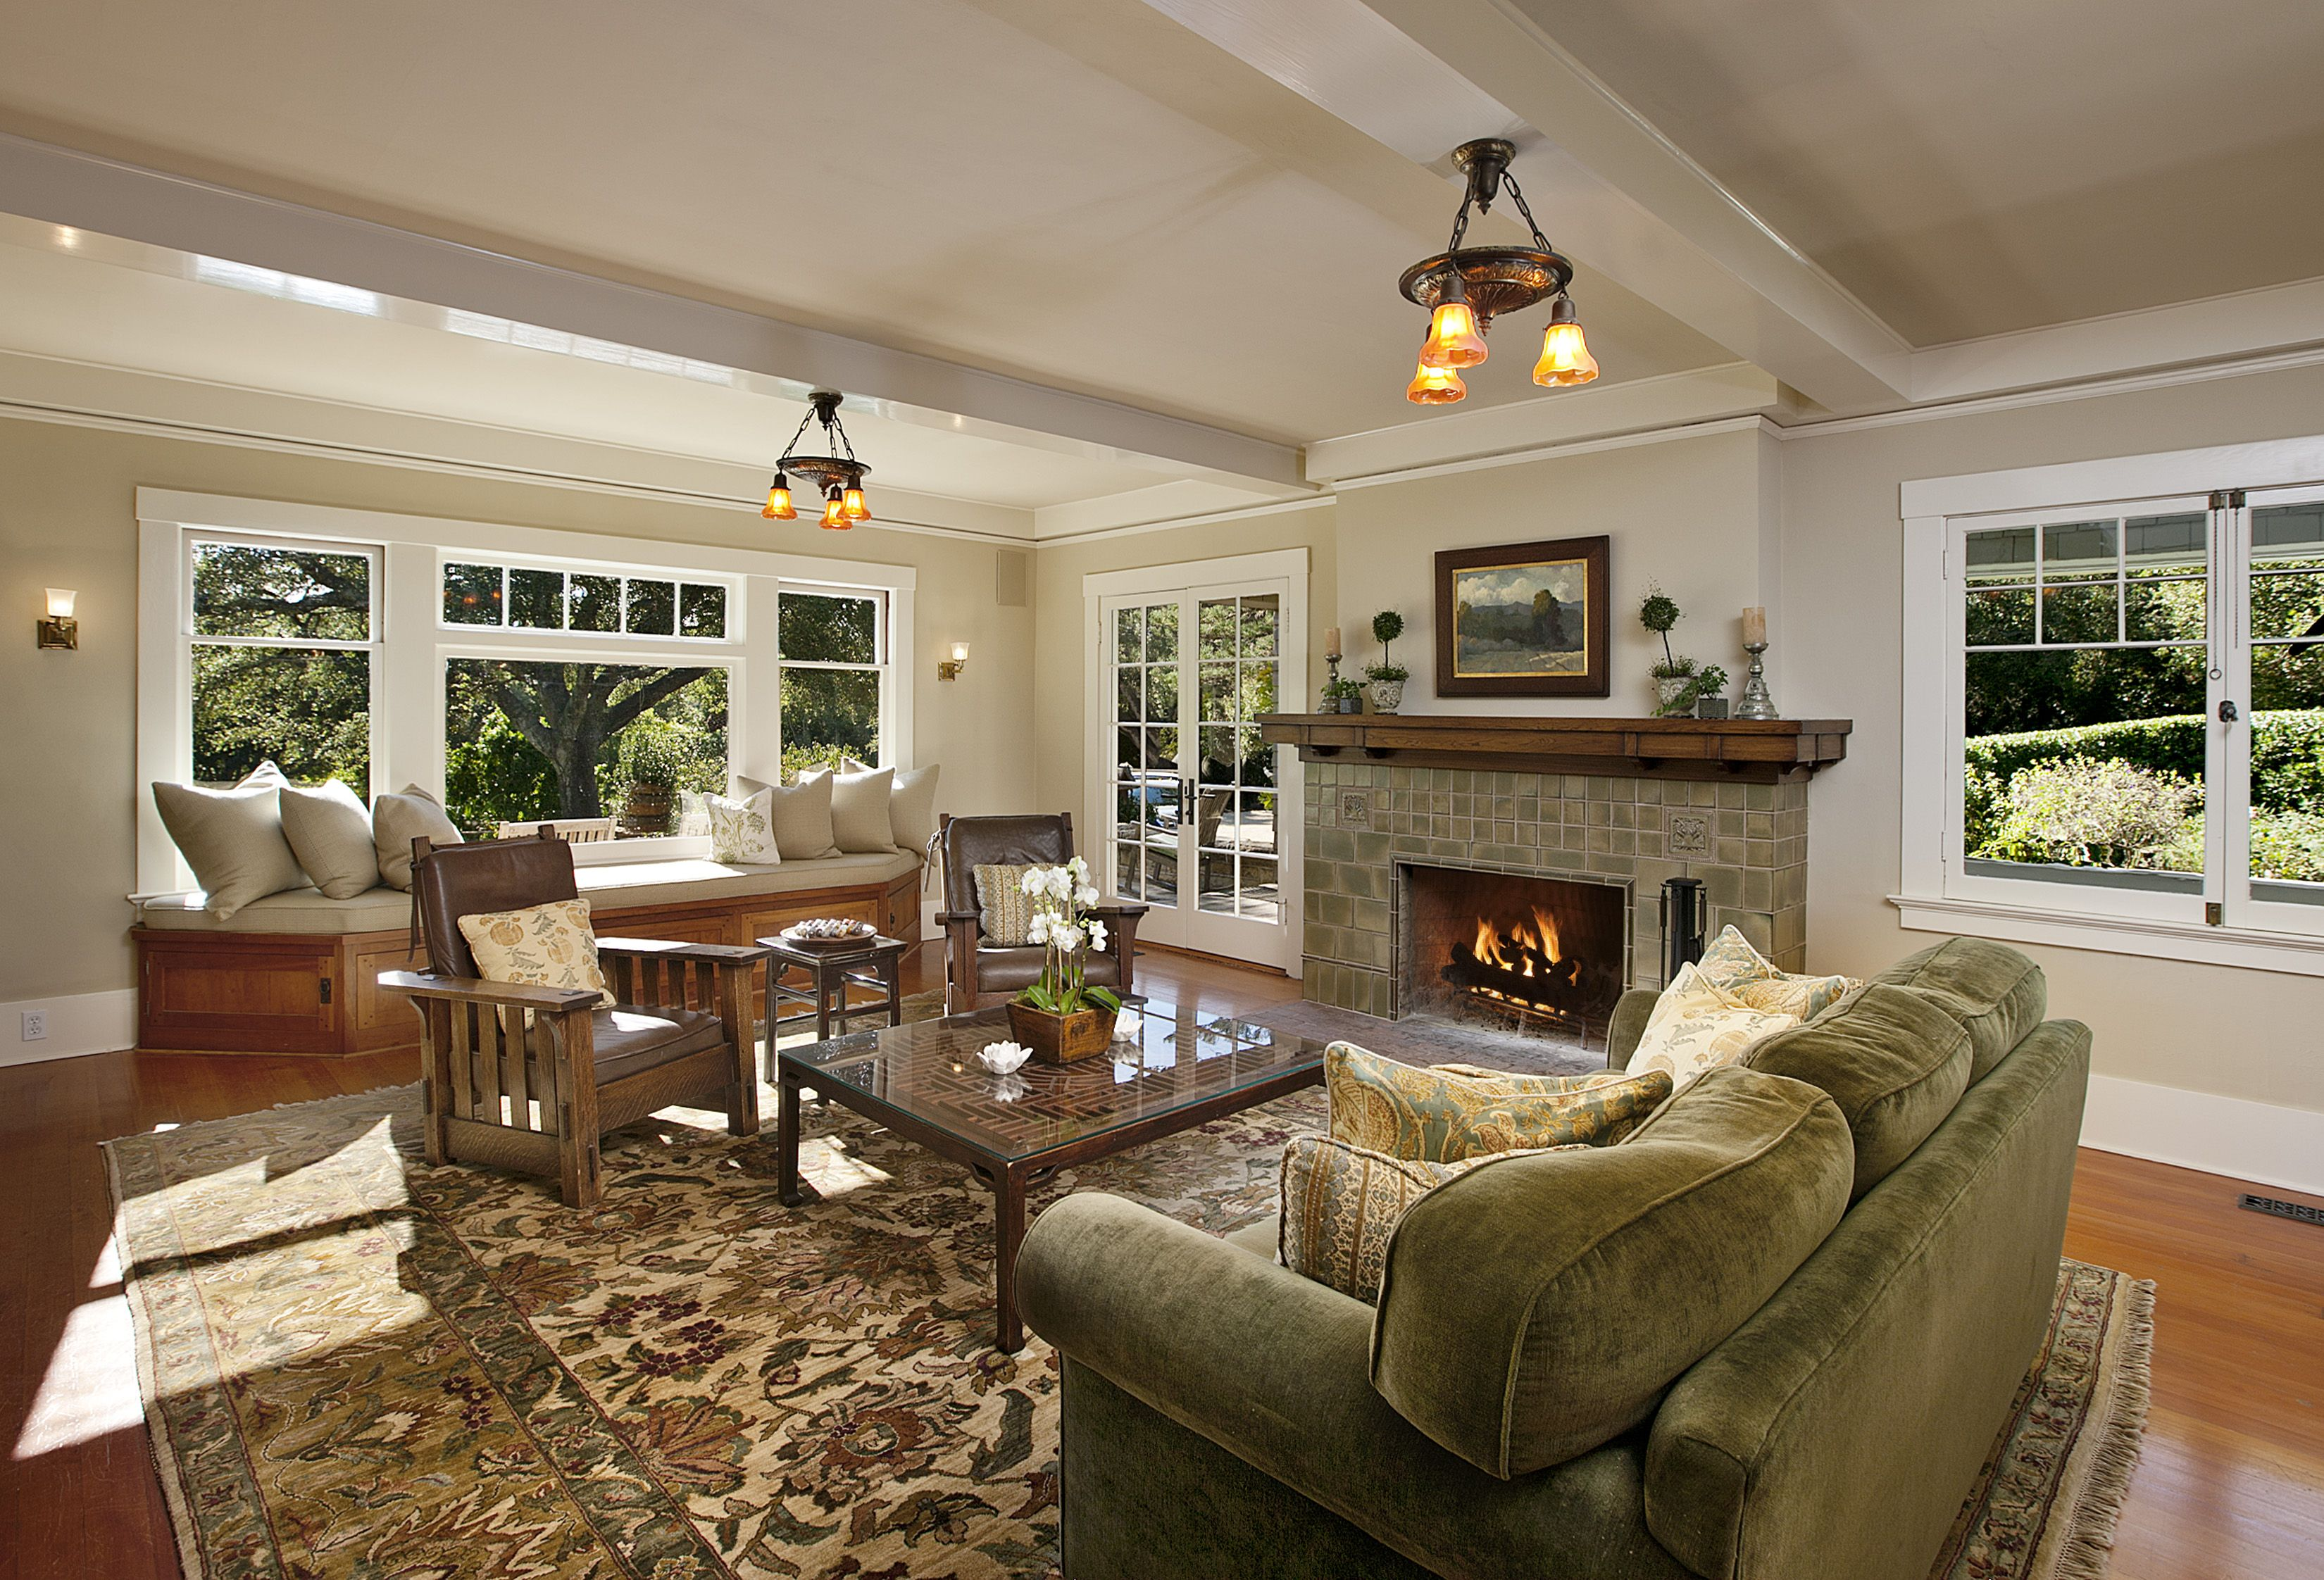 popular home styles for 2012 | craftsman style, craftsman and